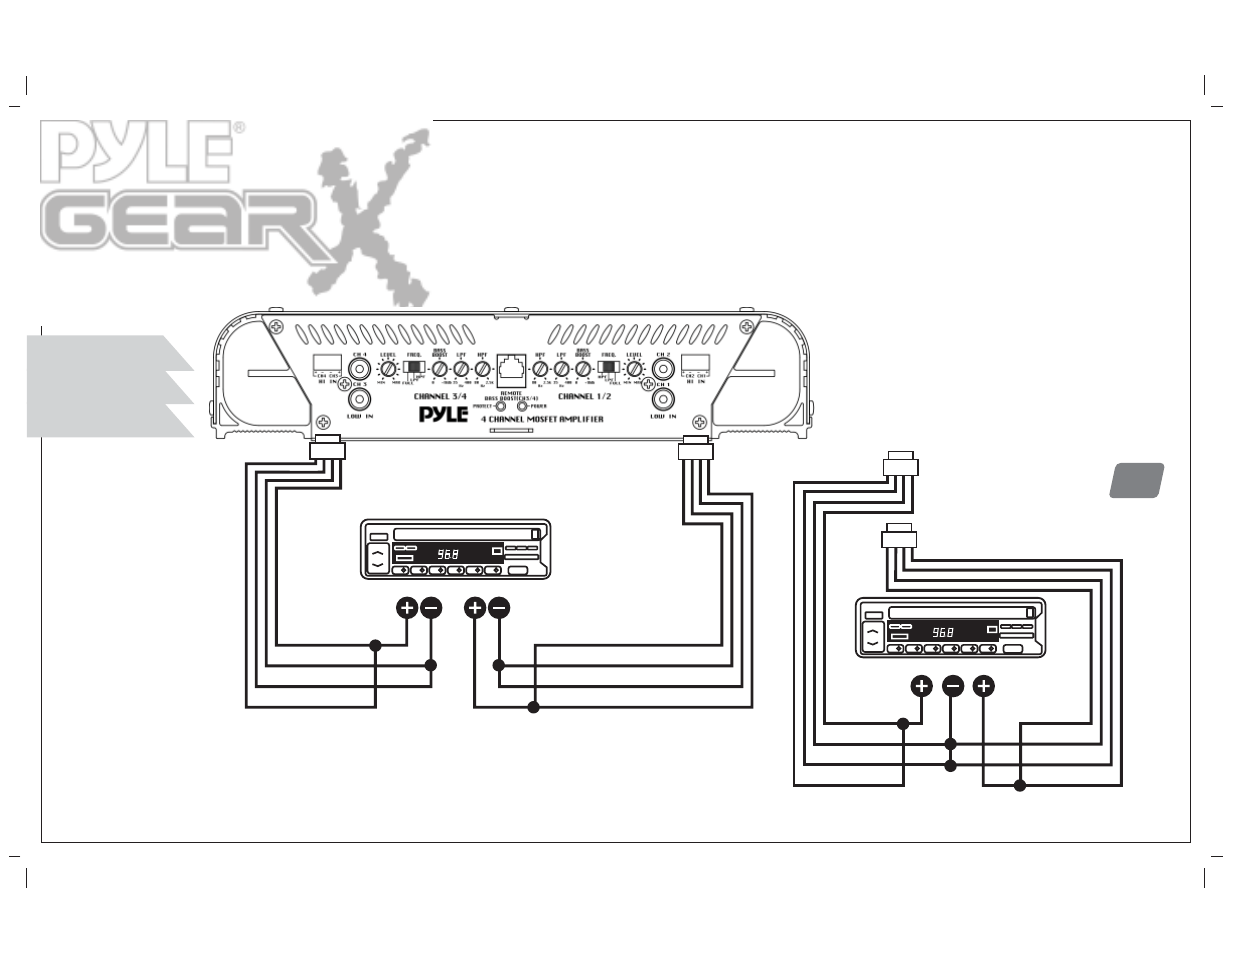 hight resolution of high level mono input connections pyle audio pla 4300d user manual page 31 39